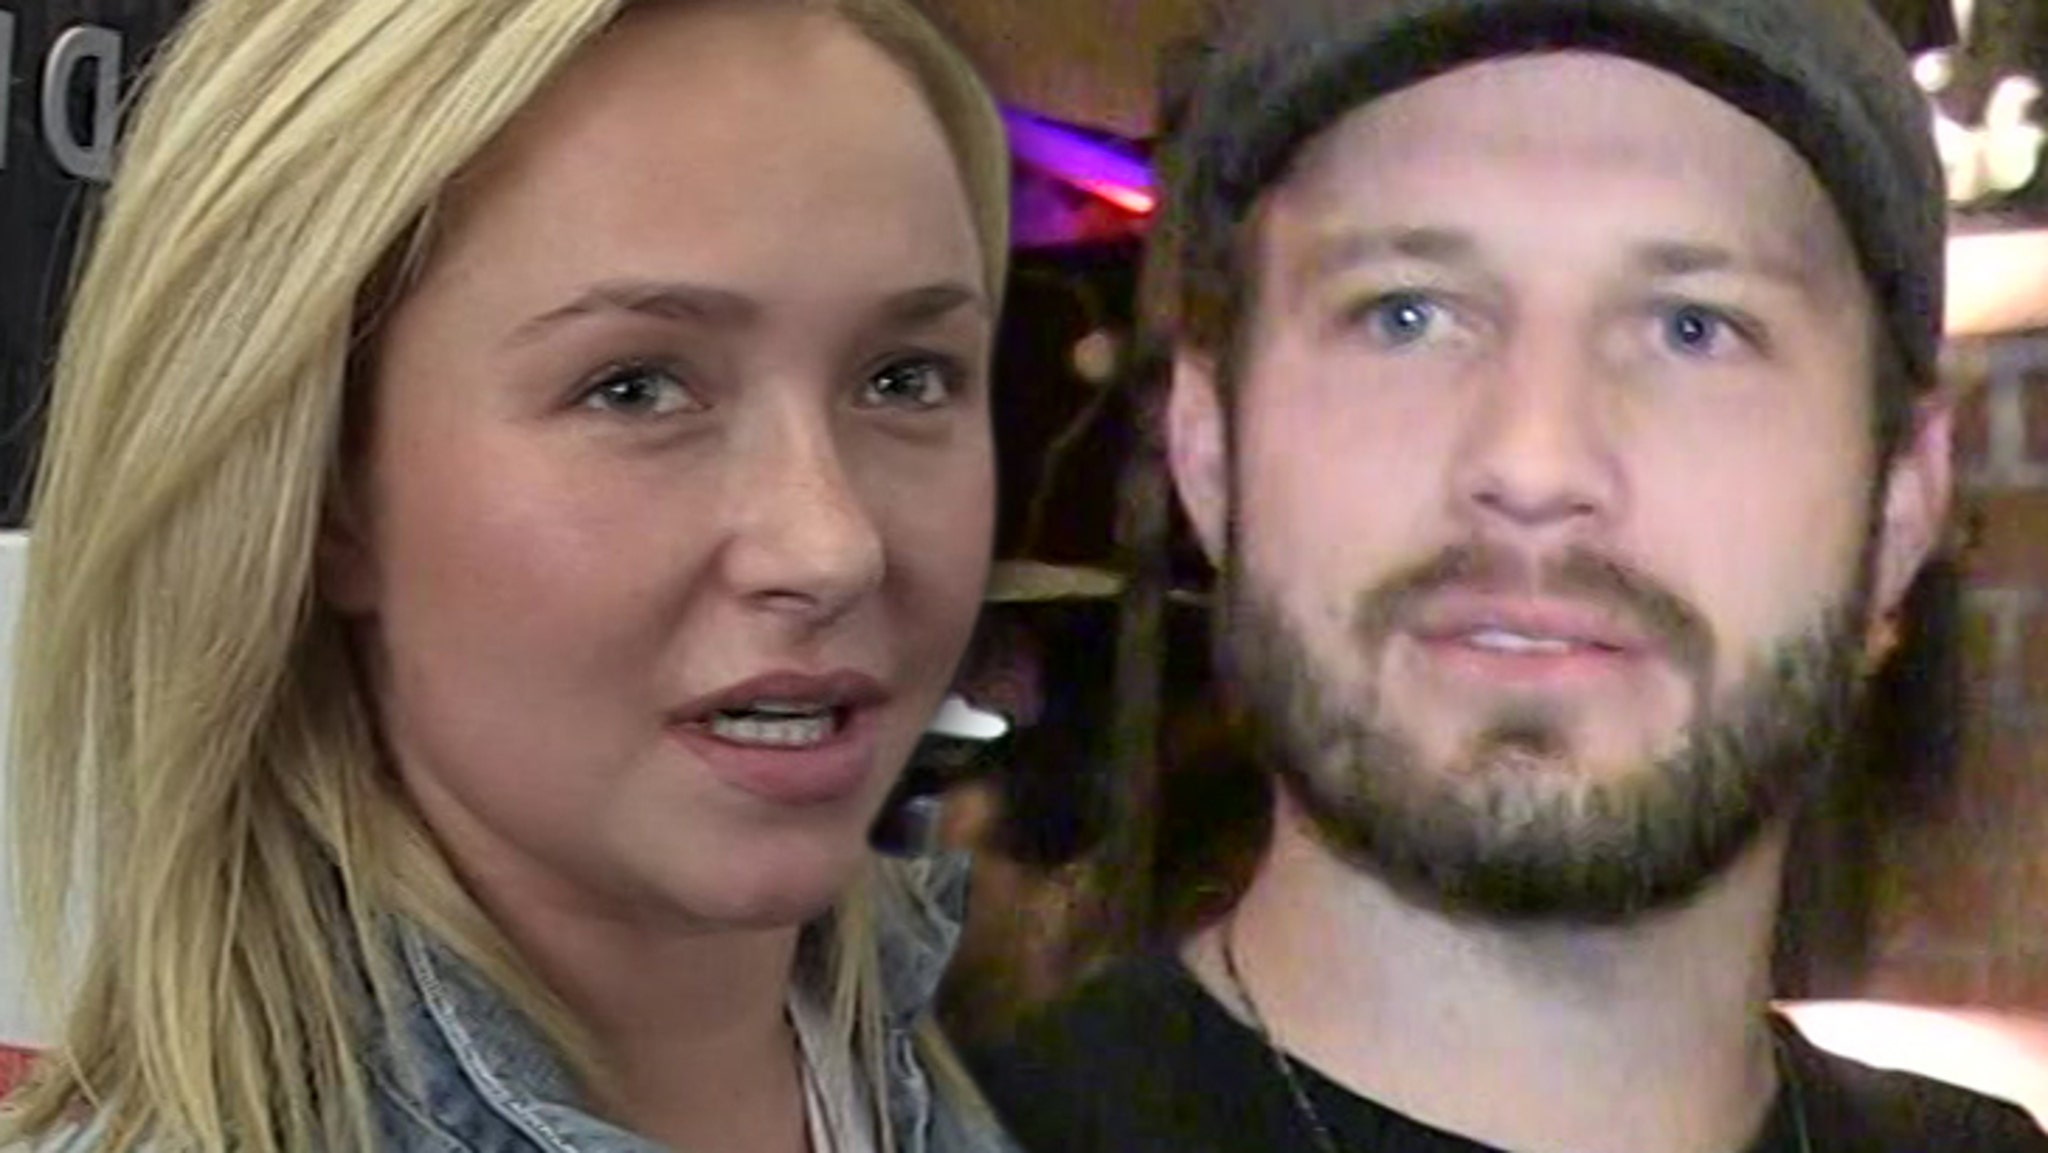 hayden panettiere drunk and frantic according to new